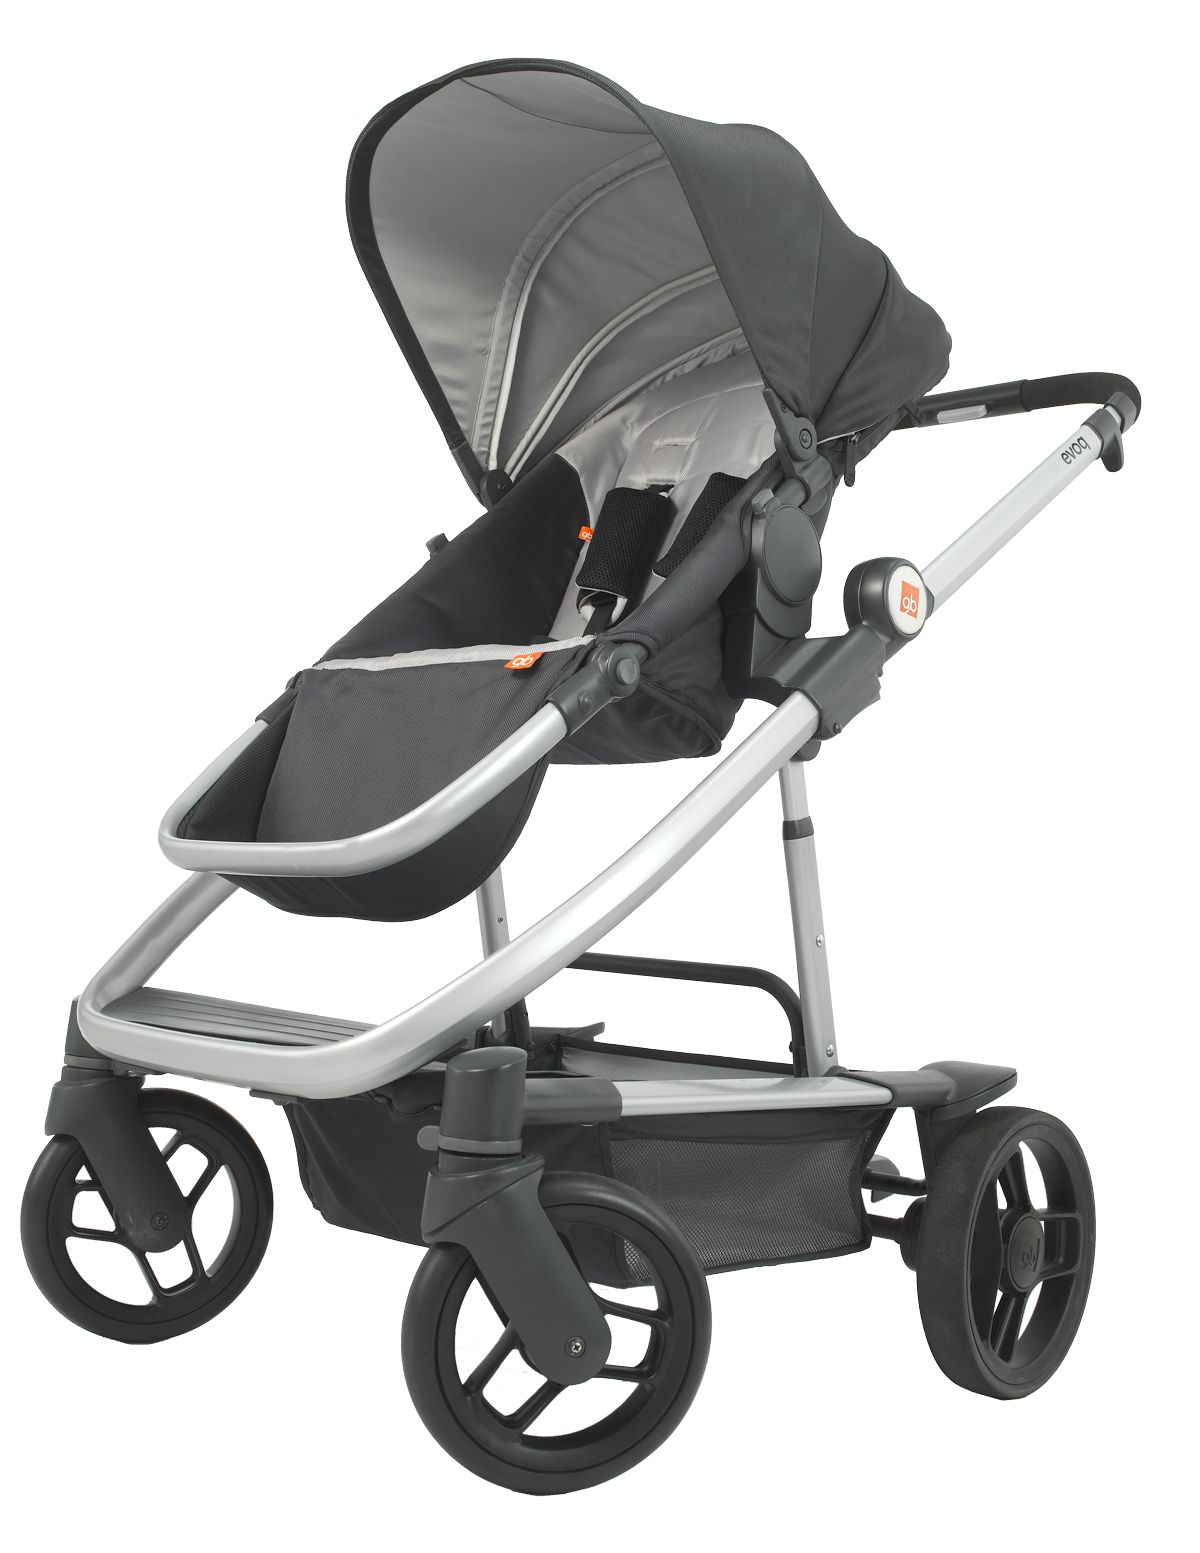 GB Evoq 4-in-1 Travel System in the Babies R Us catalog. #babygear ...